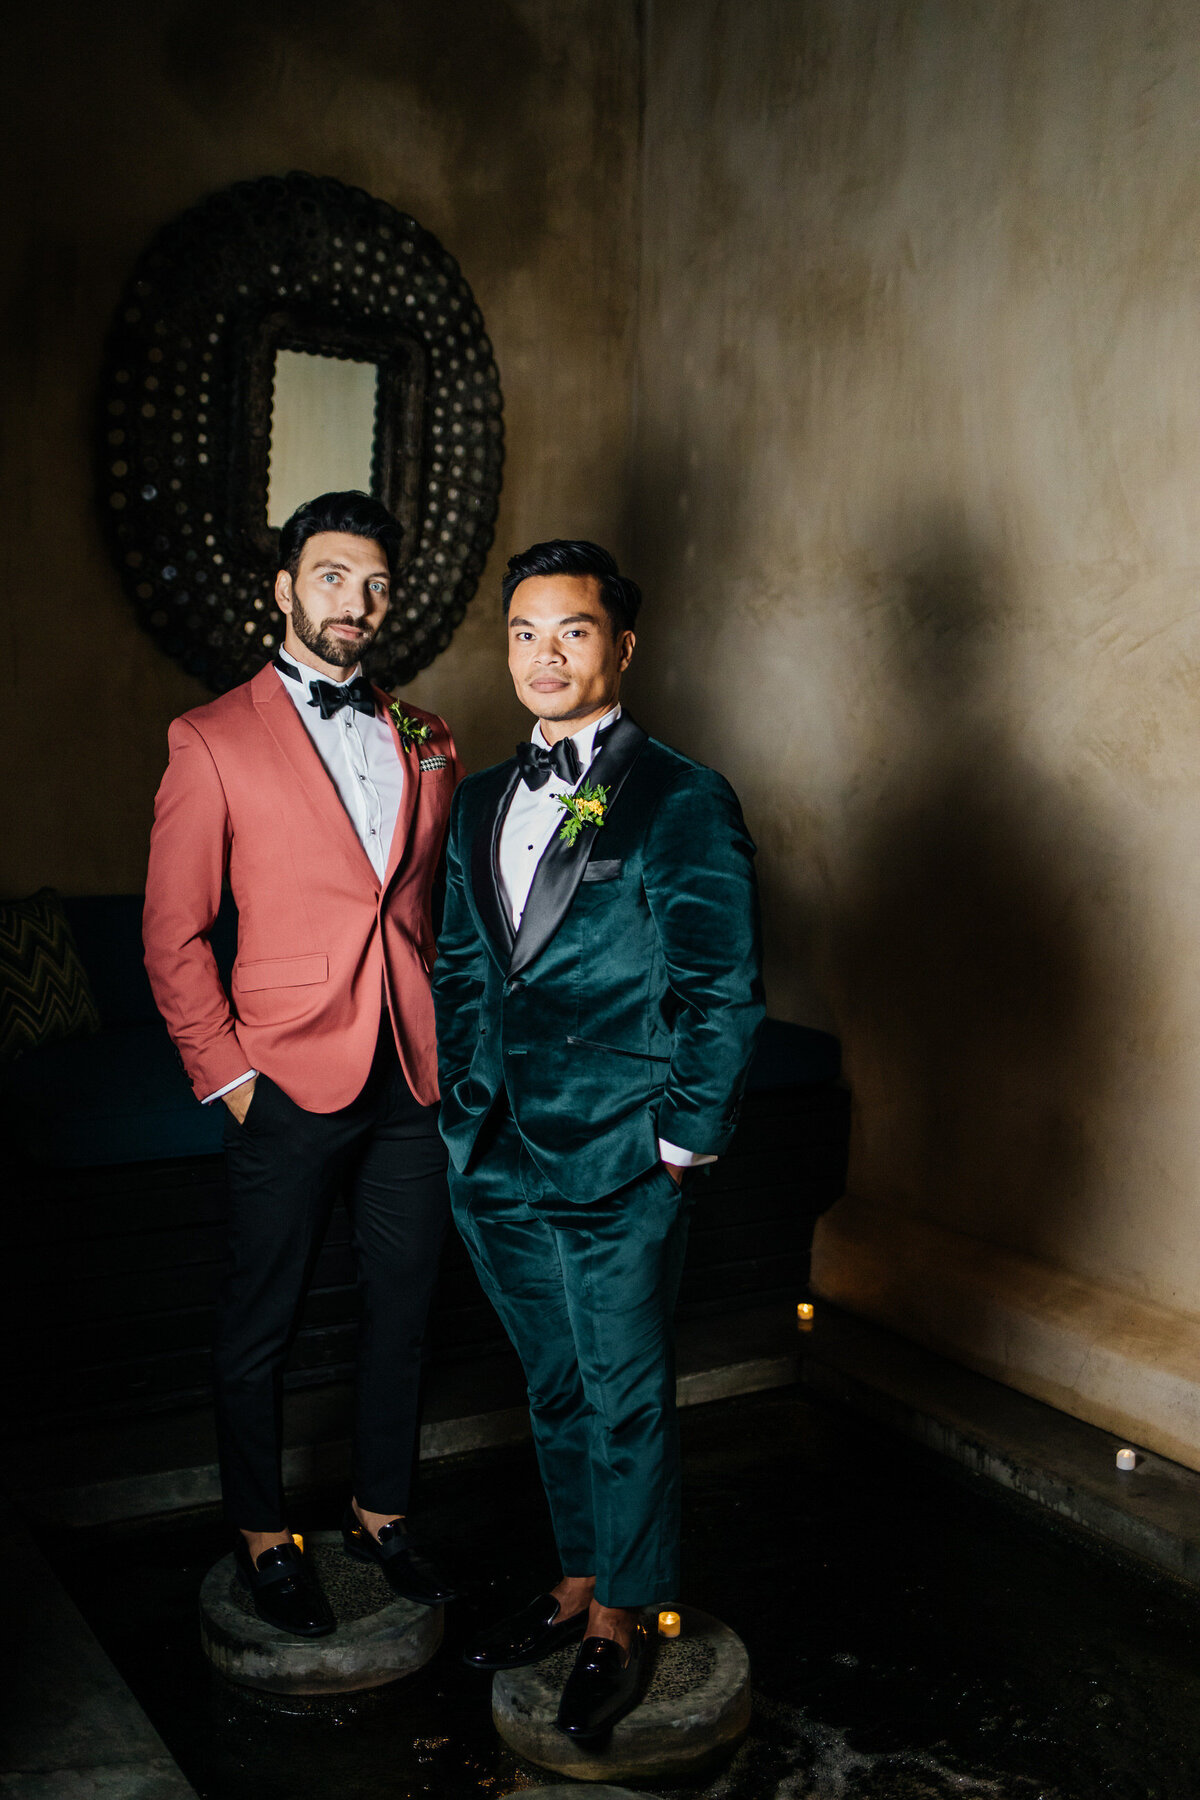 los-angeles-wedding-sowden-house-wedding-socal-wedding-photographer-erin-marton-photography27